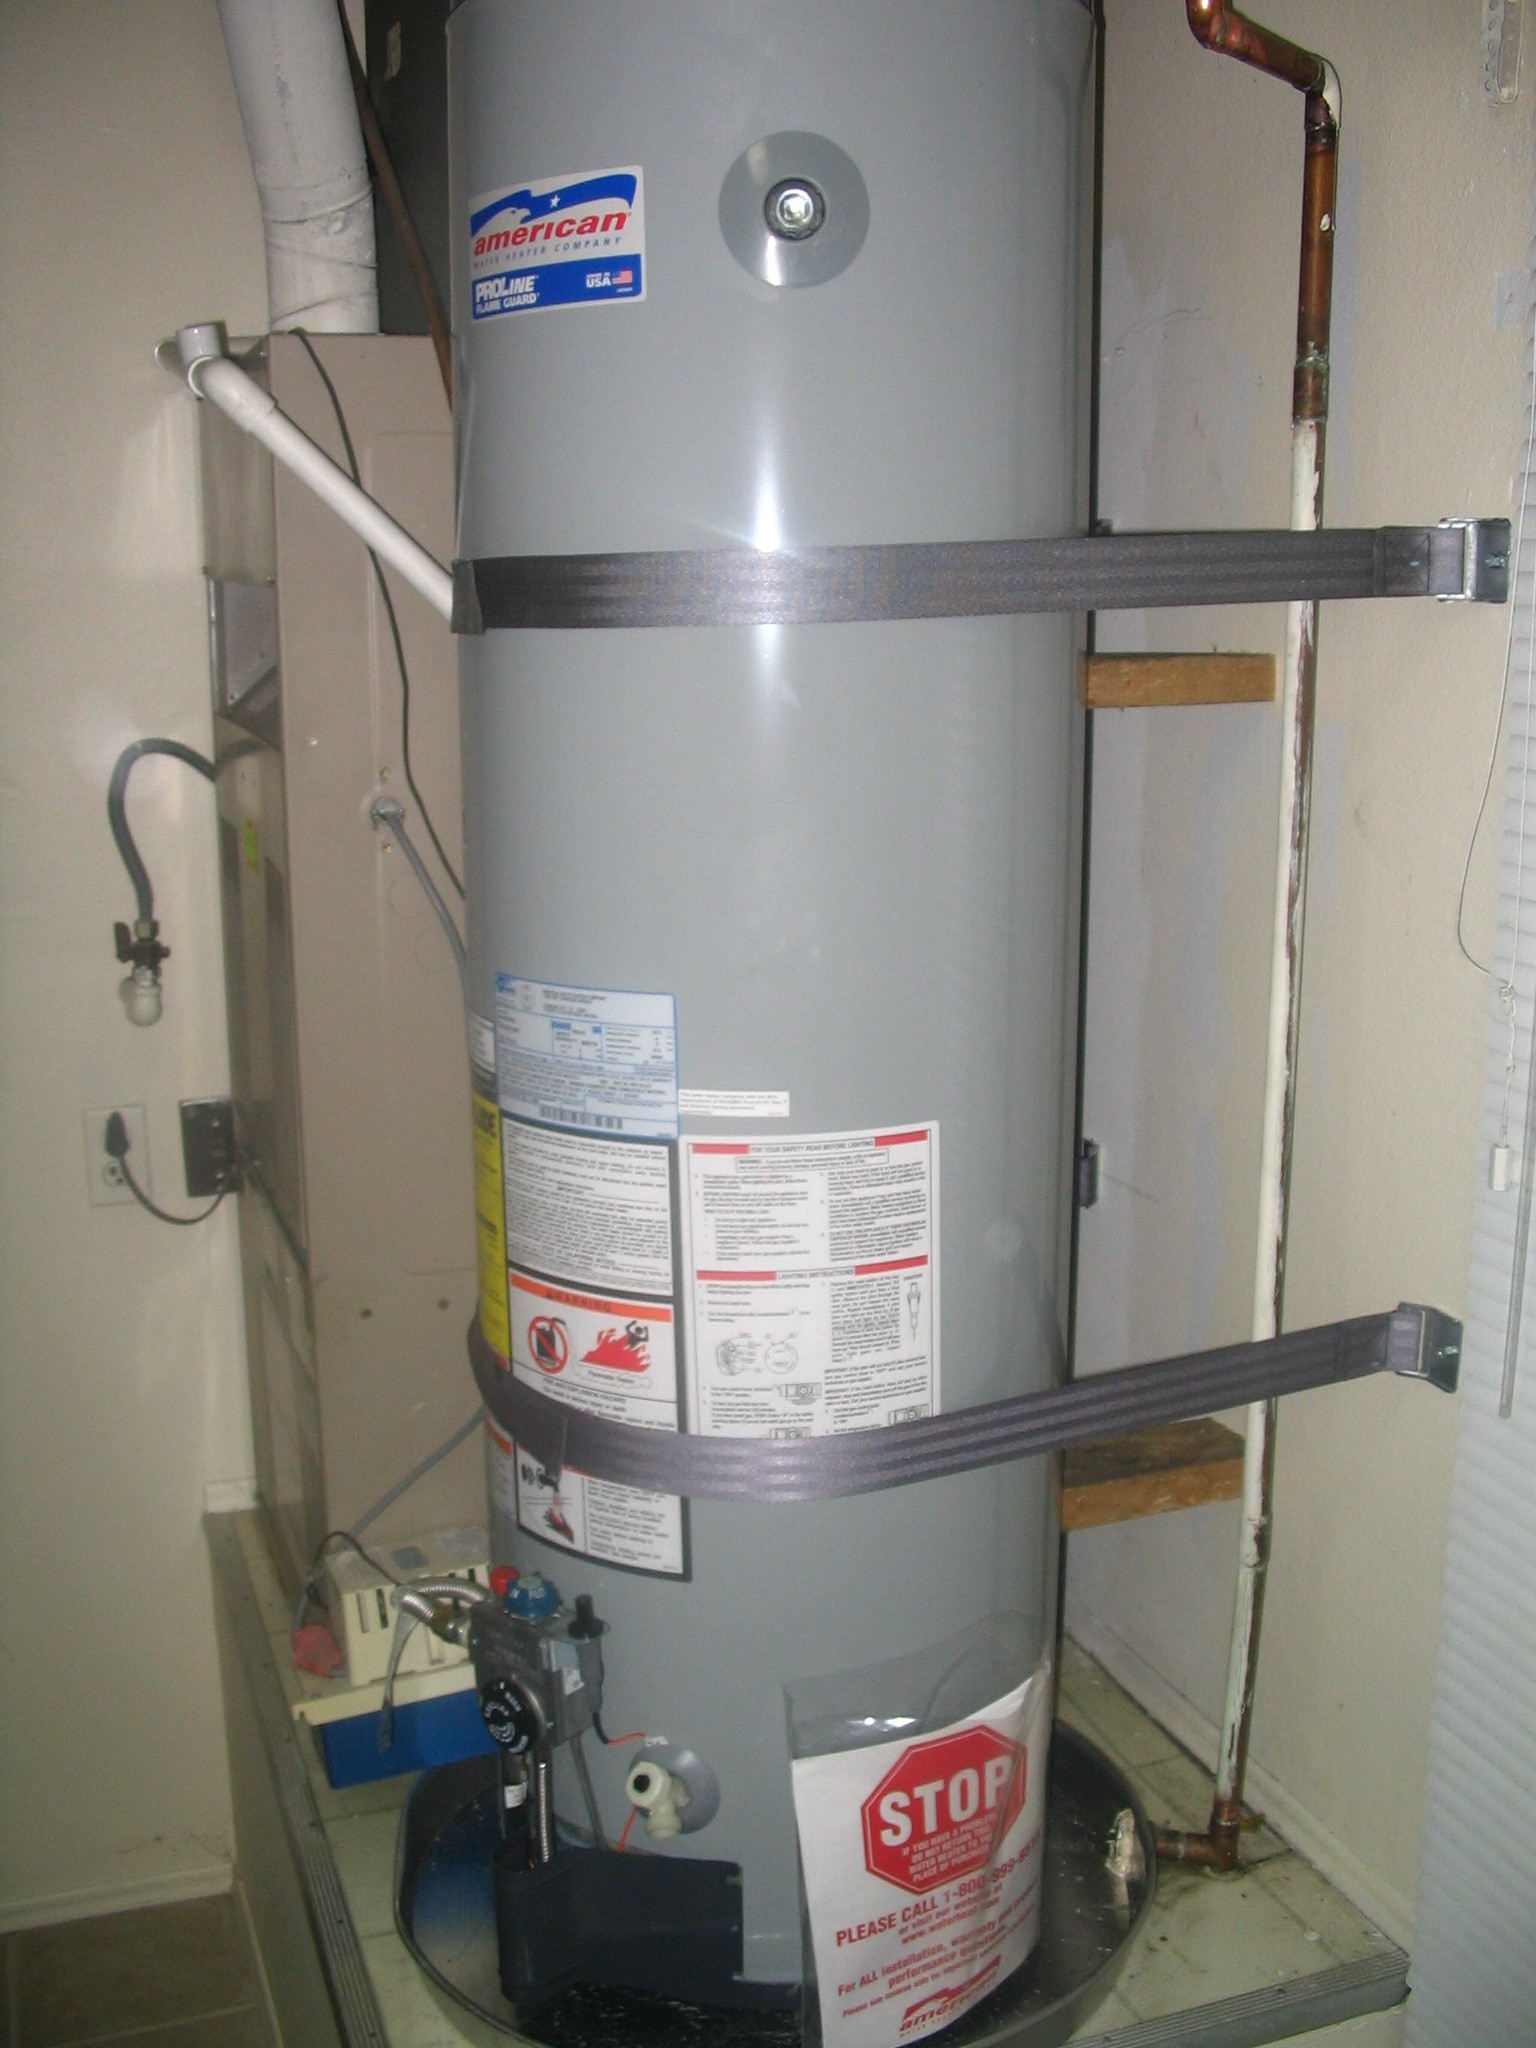 Water Heater Install Noritz Indoor Of A Noritz Condensing